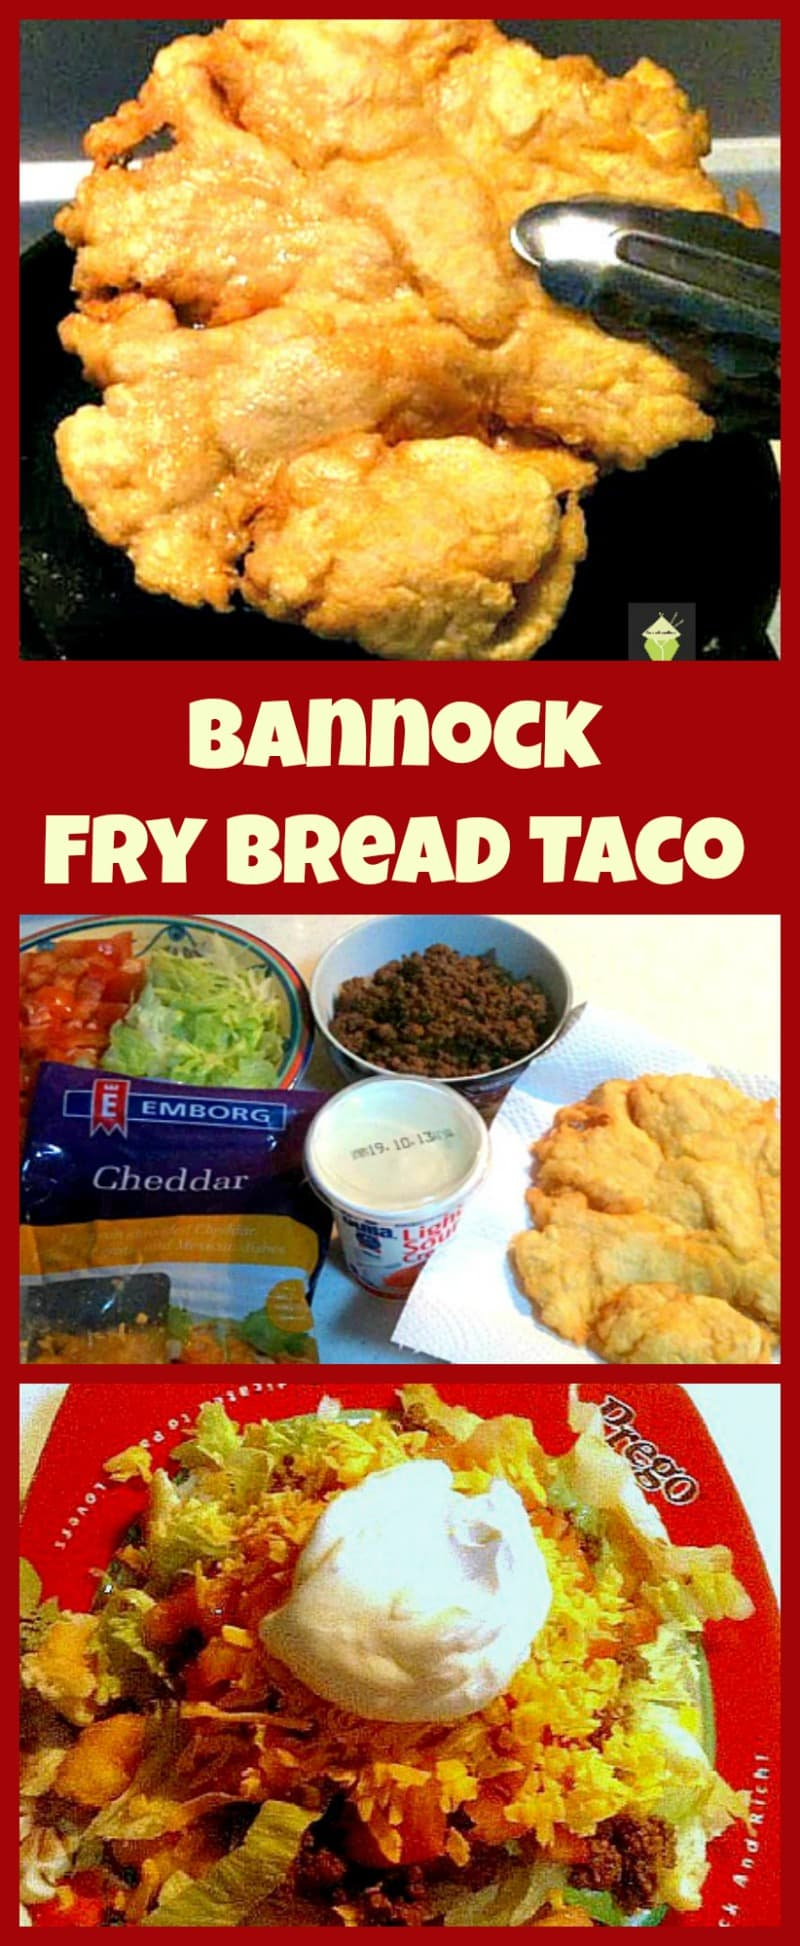 Bannock Fry Bread Taco. Easy recipe and great for parties, game nights etc